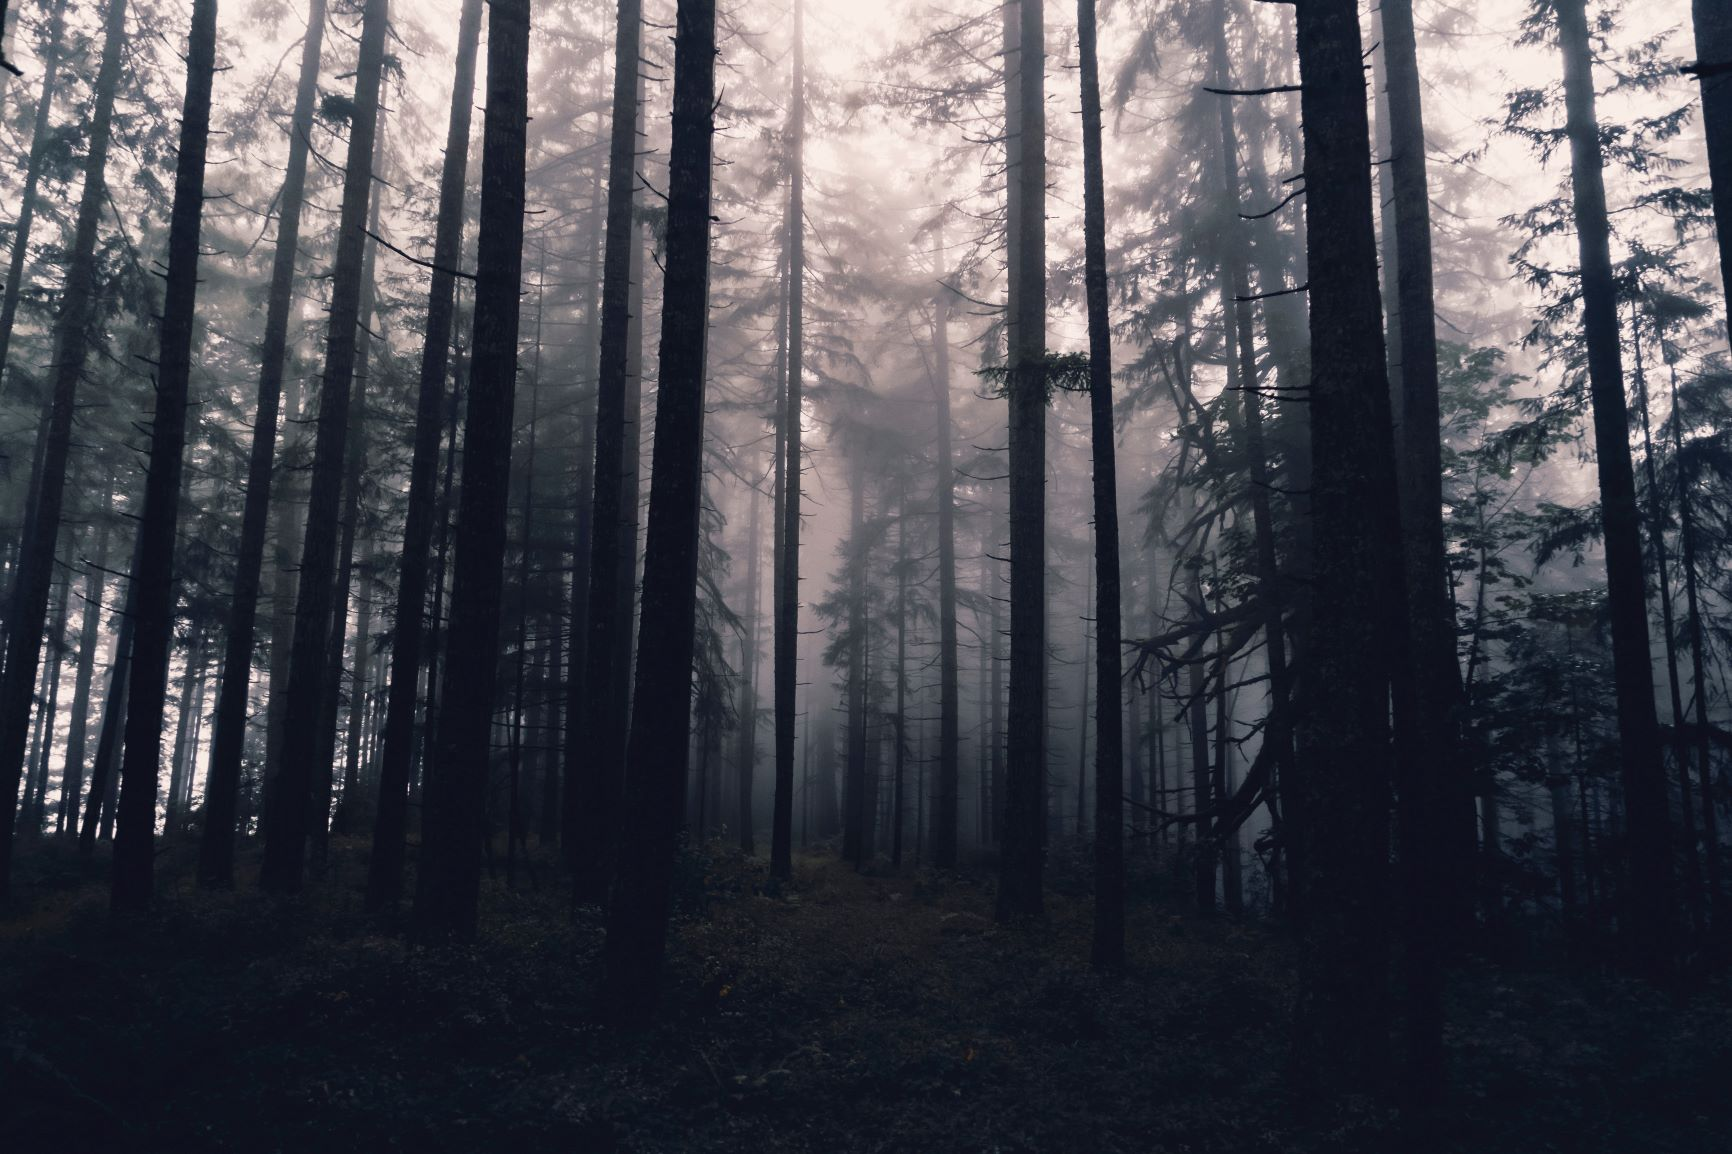 Eerie trees and mist deep in a forest